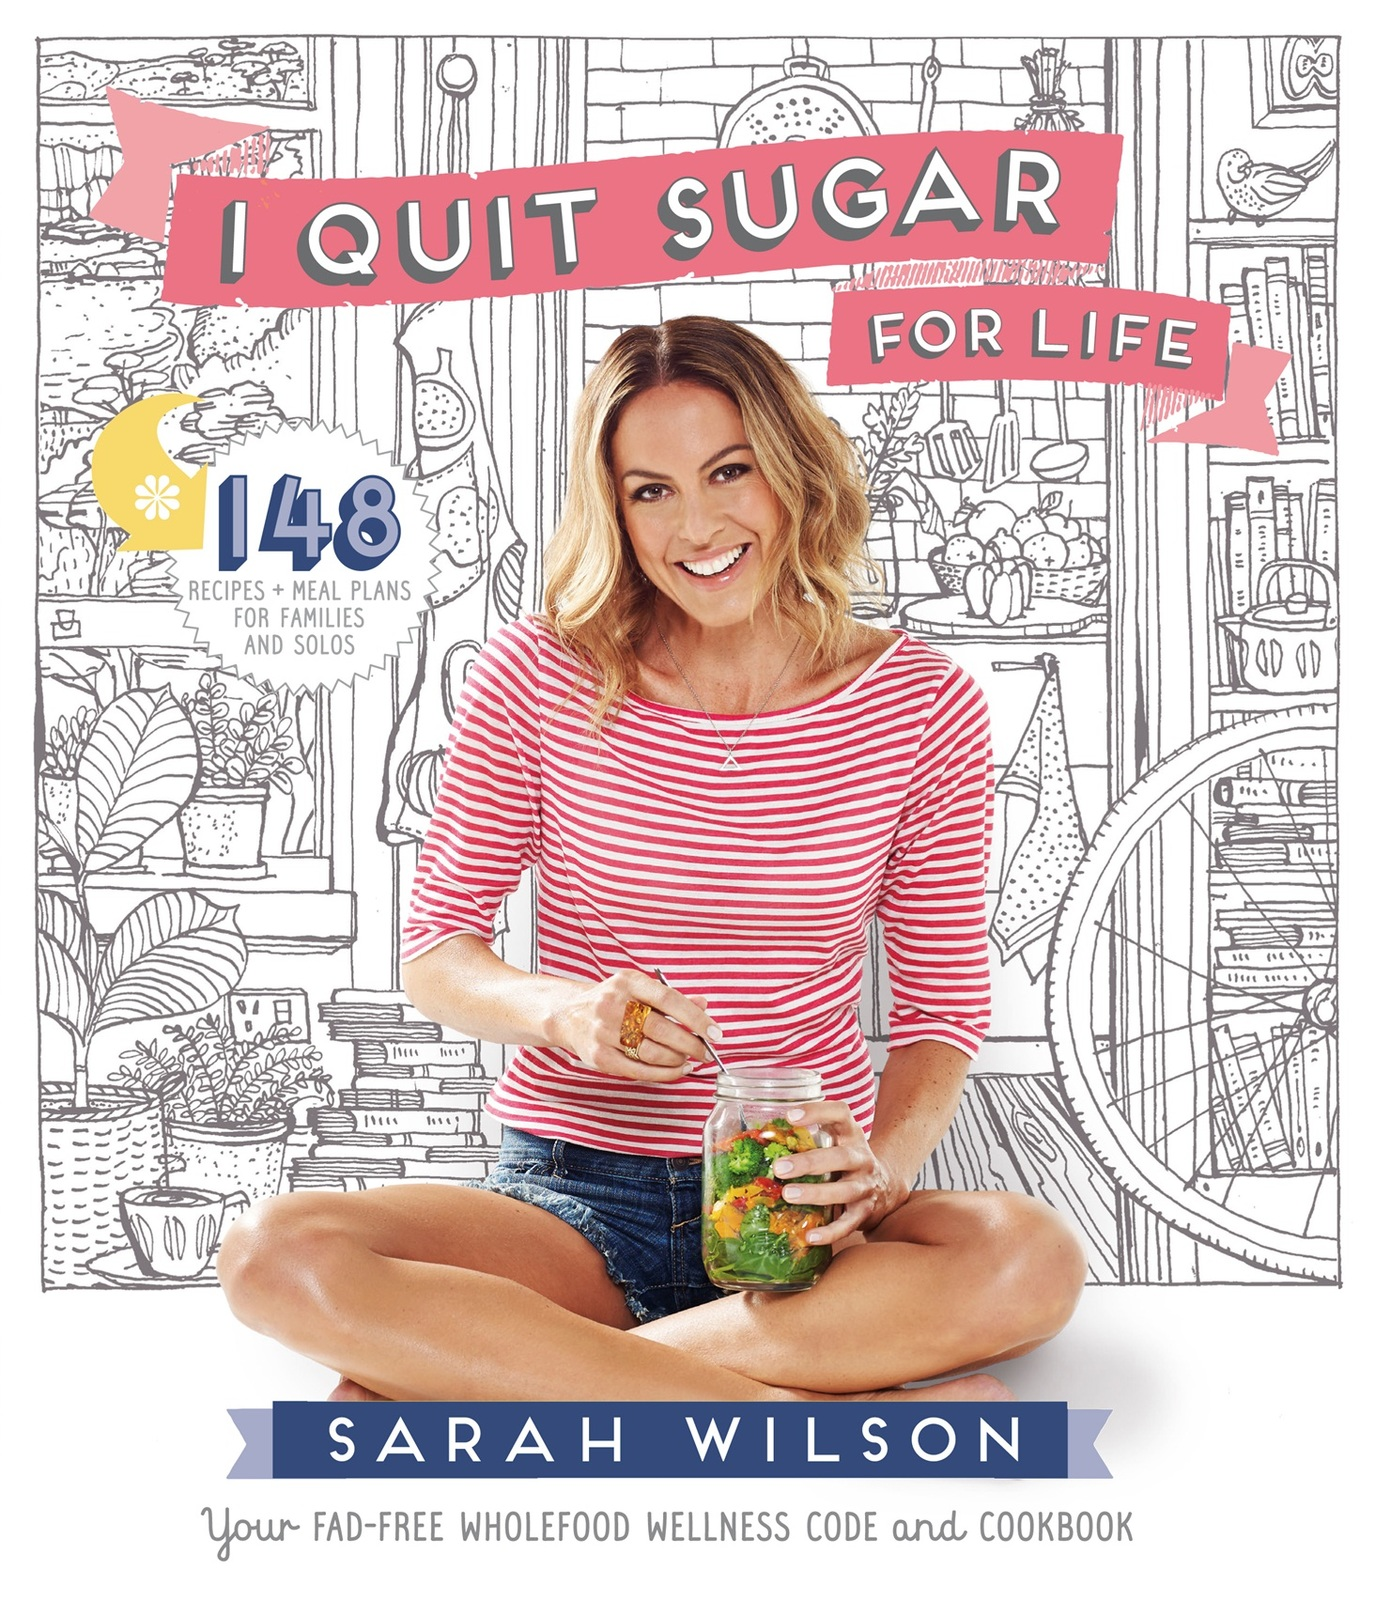 I Quit Sugar for Life by Sarah Wilson image